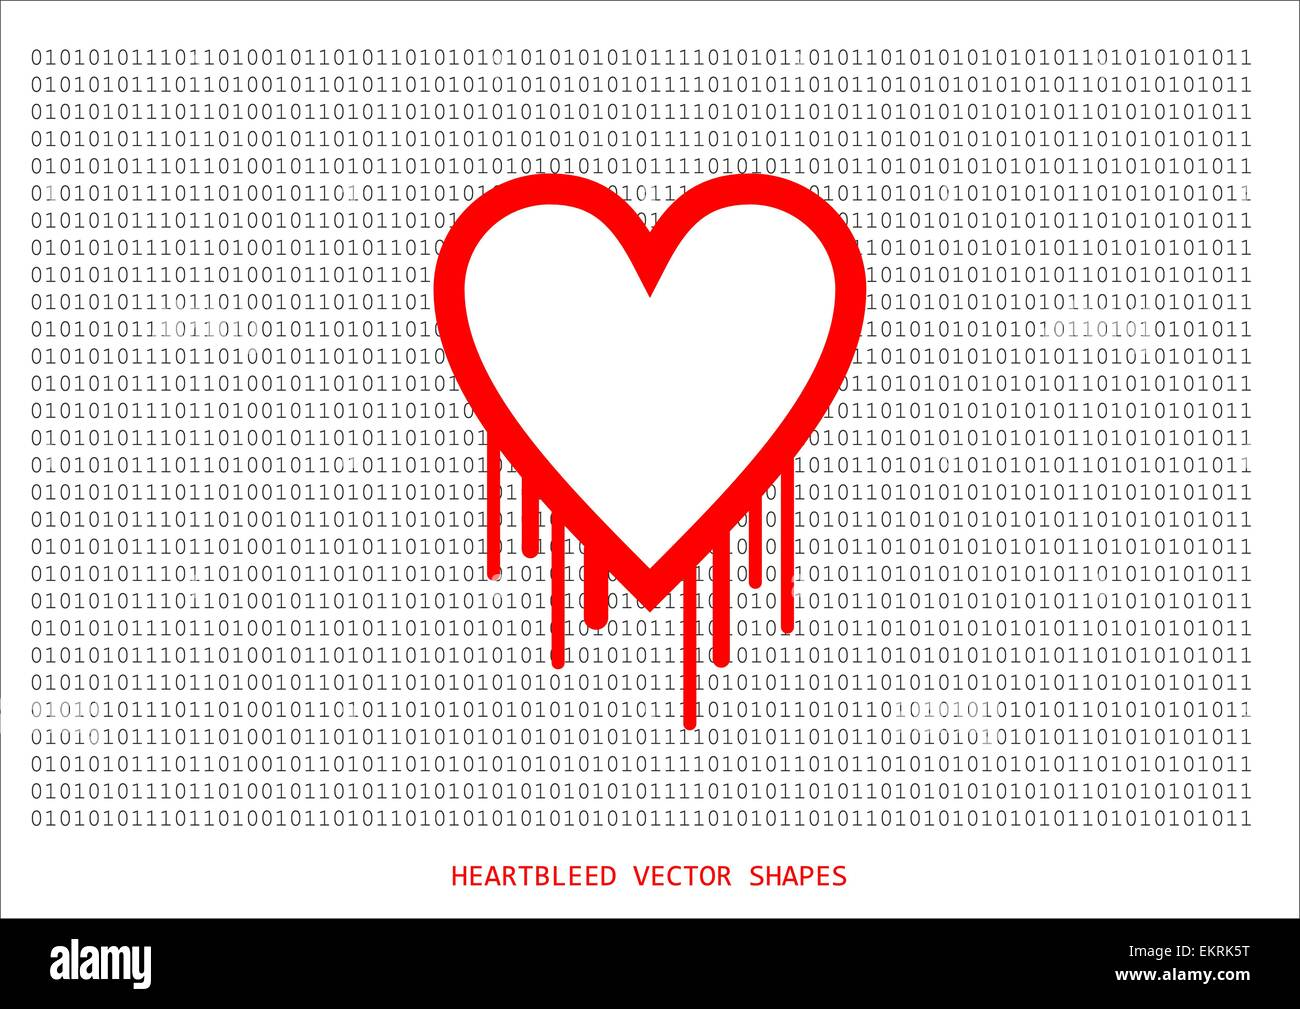 Heartbleed openssl bug vector shape, bleeding heart with wall of text in background - Stock Vector